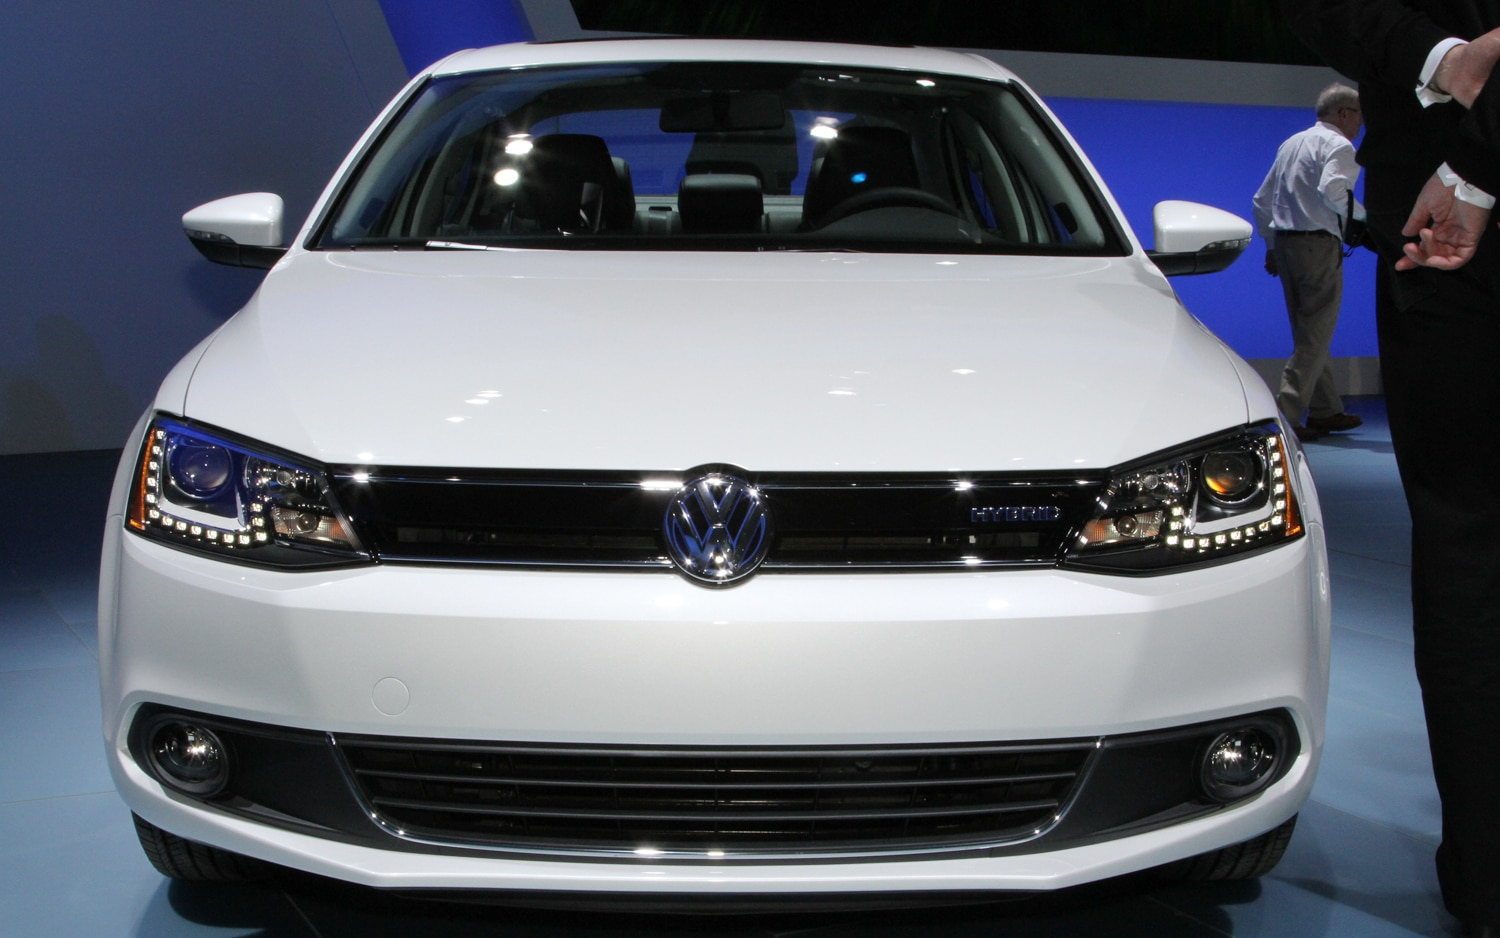 first look 2013 volkswagen jetta hybrid 2012 detroit. Black Bedroom Furniture Sets. Home Design Ideas